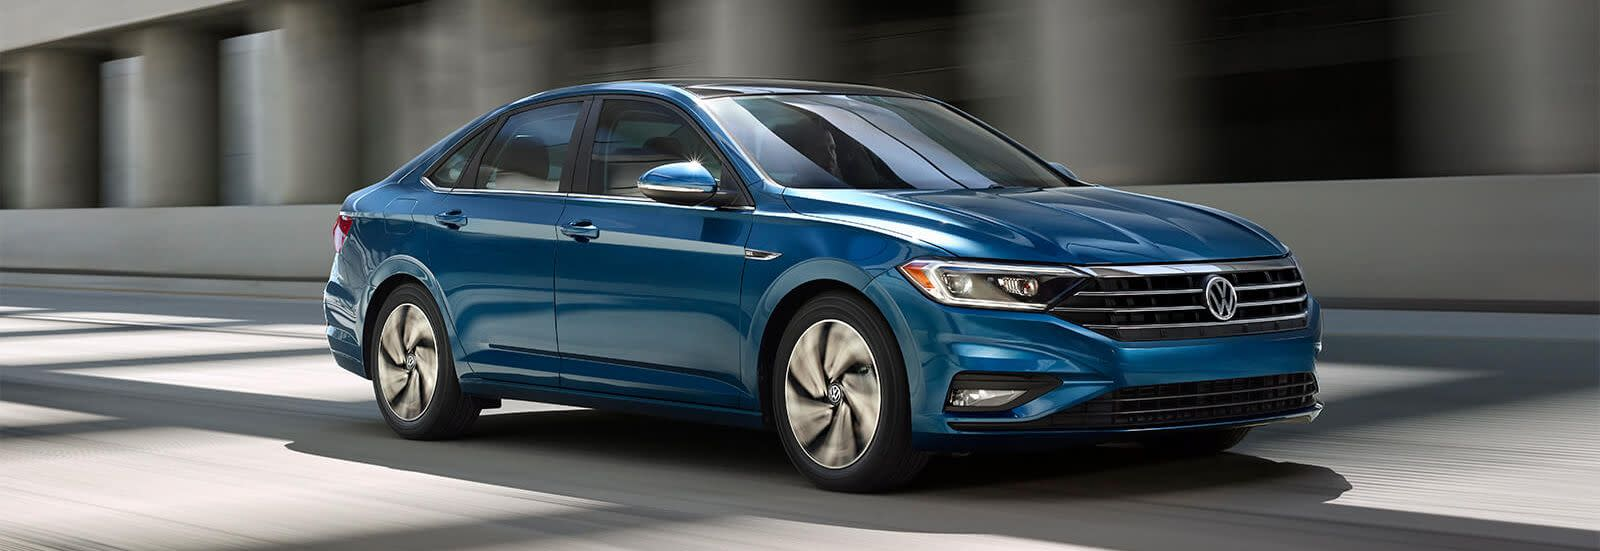 2019 Volkswagen Jetta Leasing In Amityville Ny Legend Auto Group